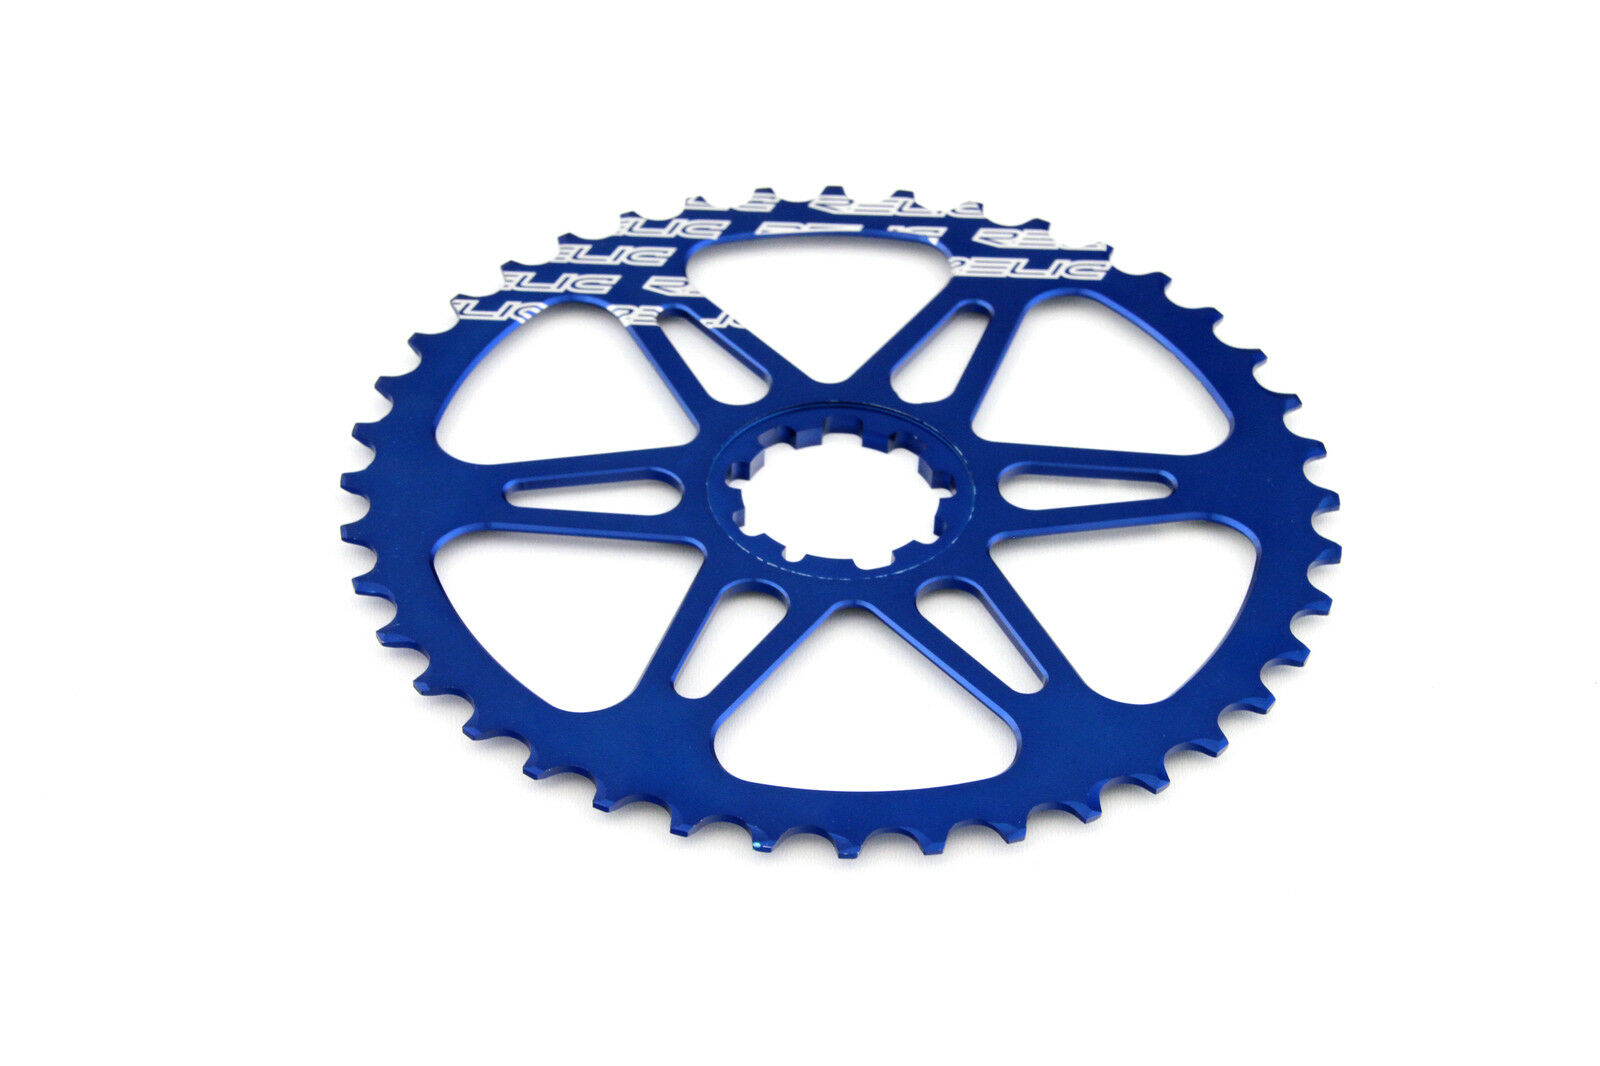 Relic 40T Final Gear Upgrade Kit for Shimano 10 Speed - 11 34T Cassette - bluee